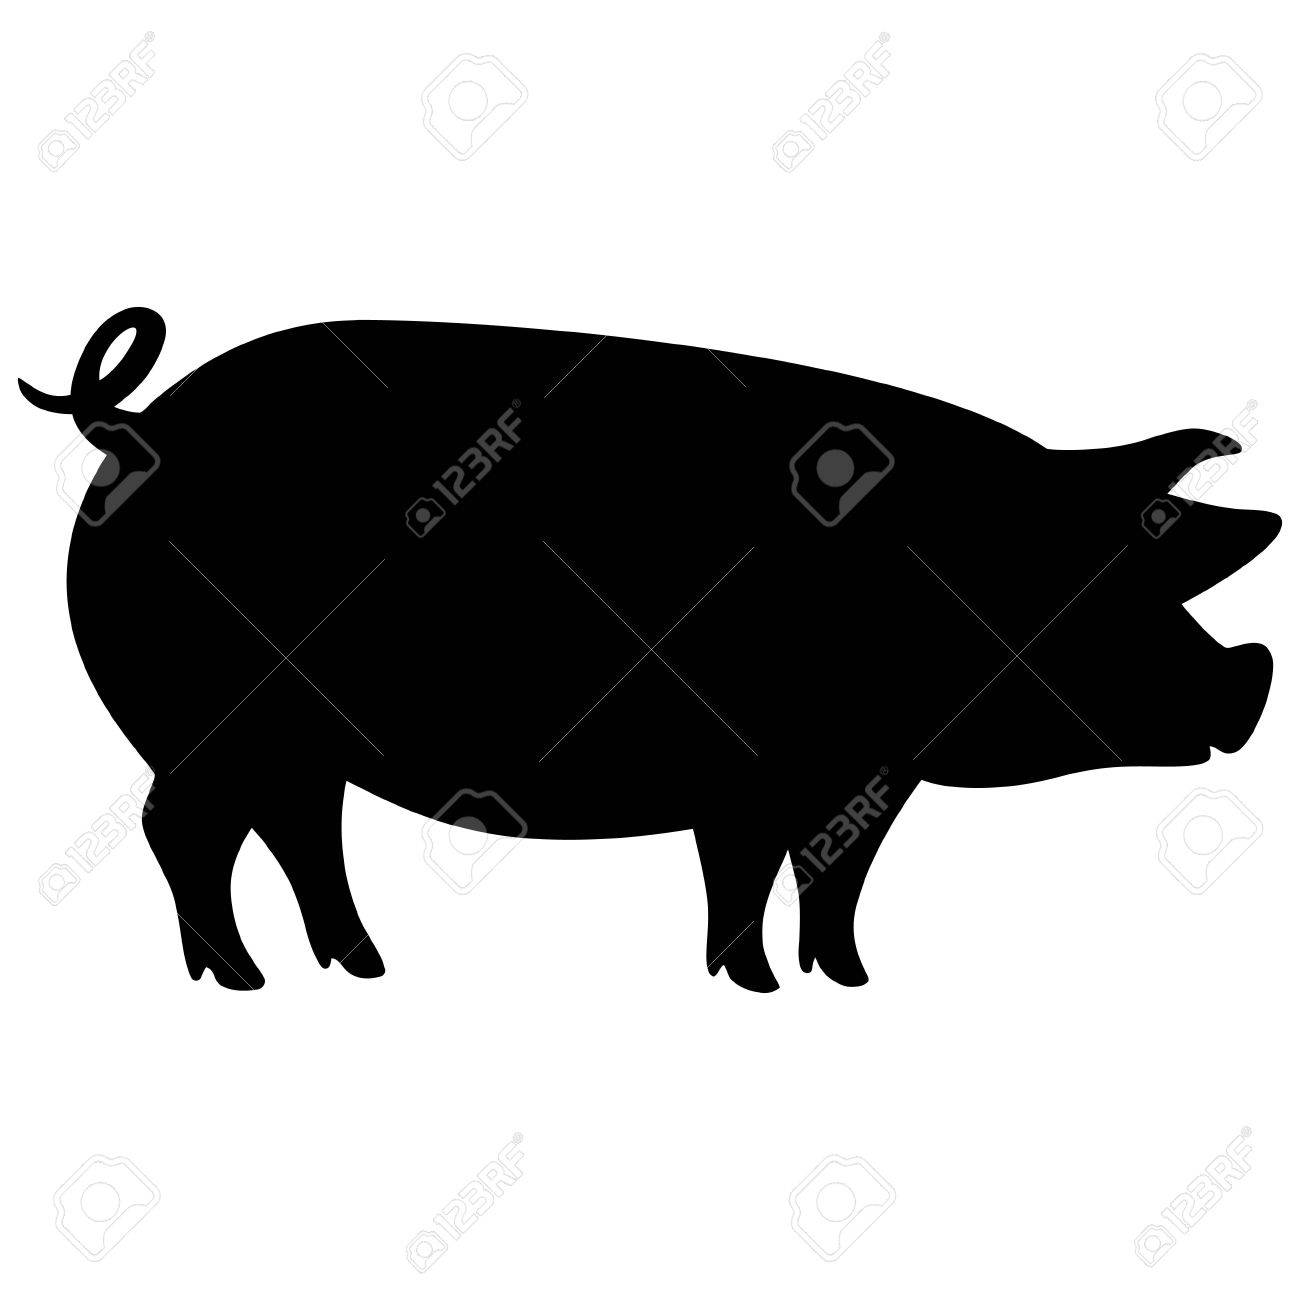 pig silhouette royalty free cliparts vectors and stock rh 123rf com